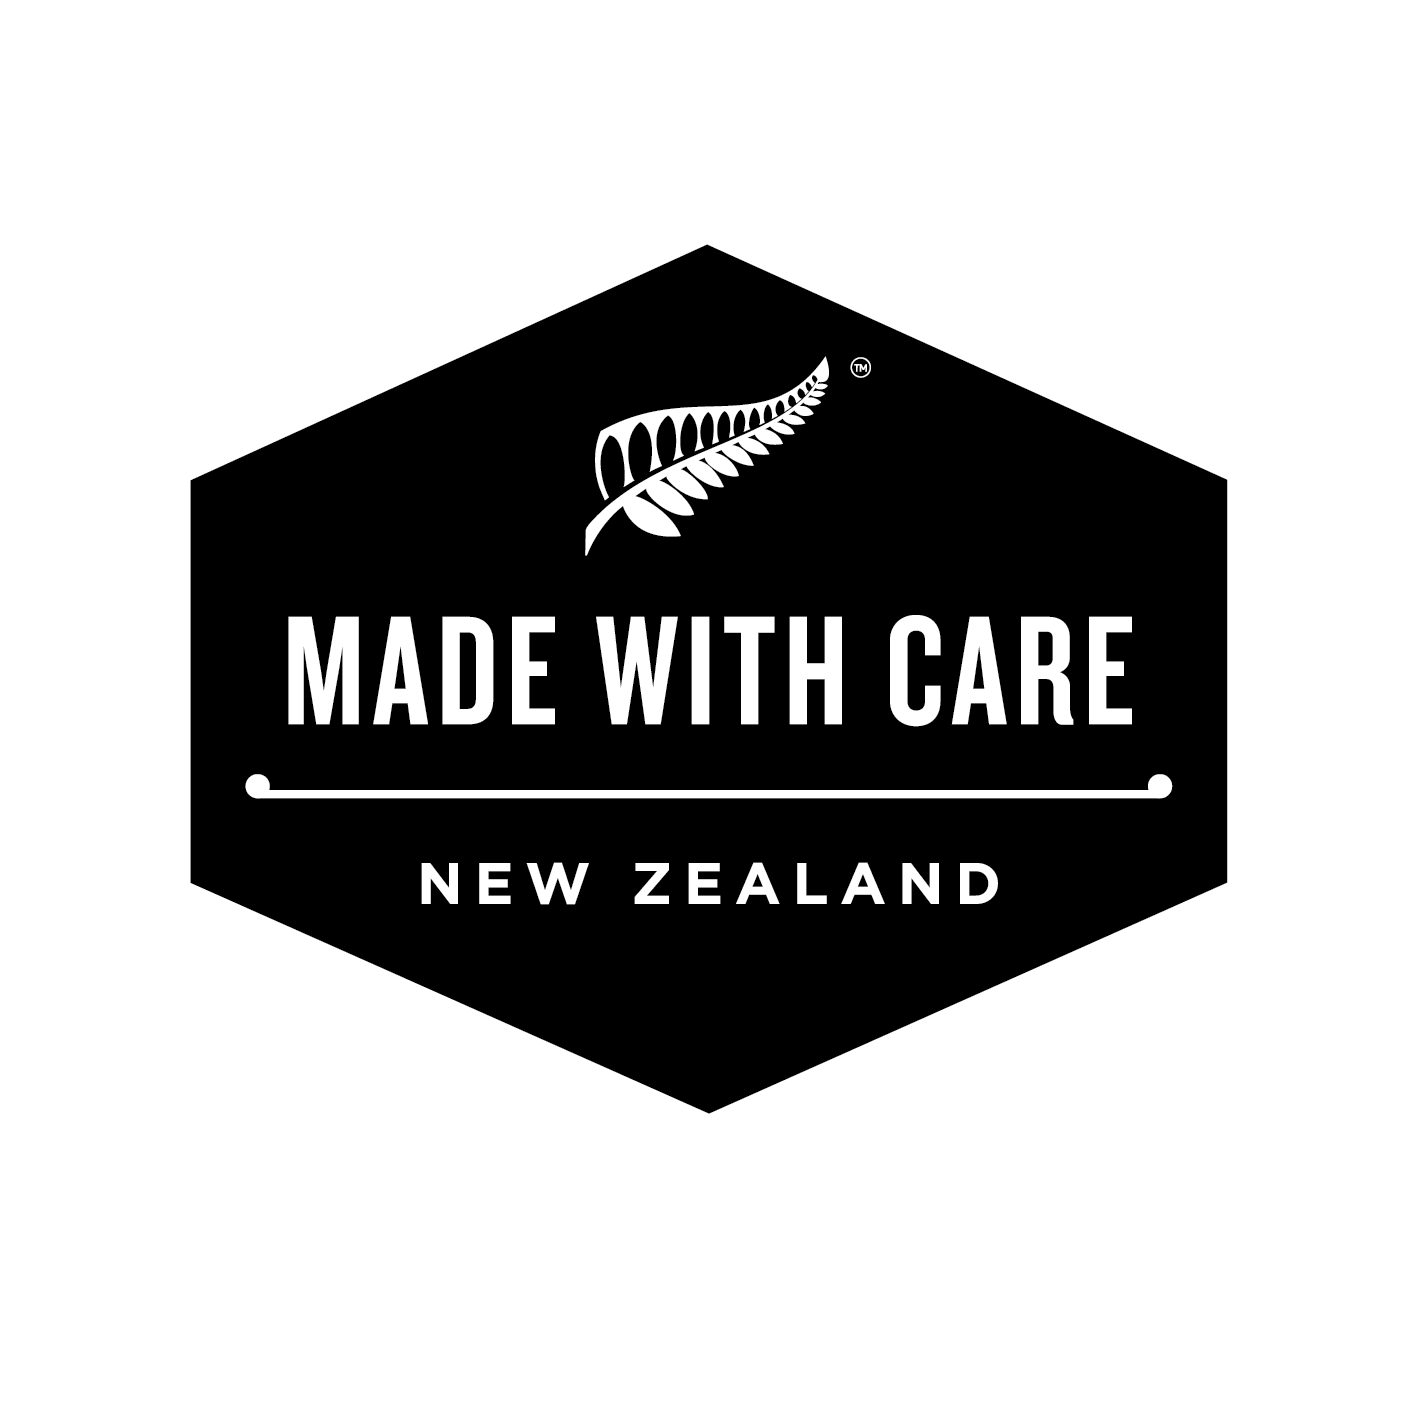 made with care